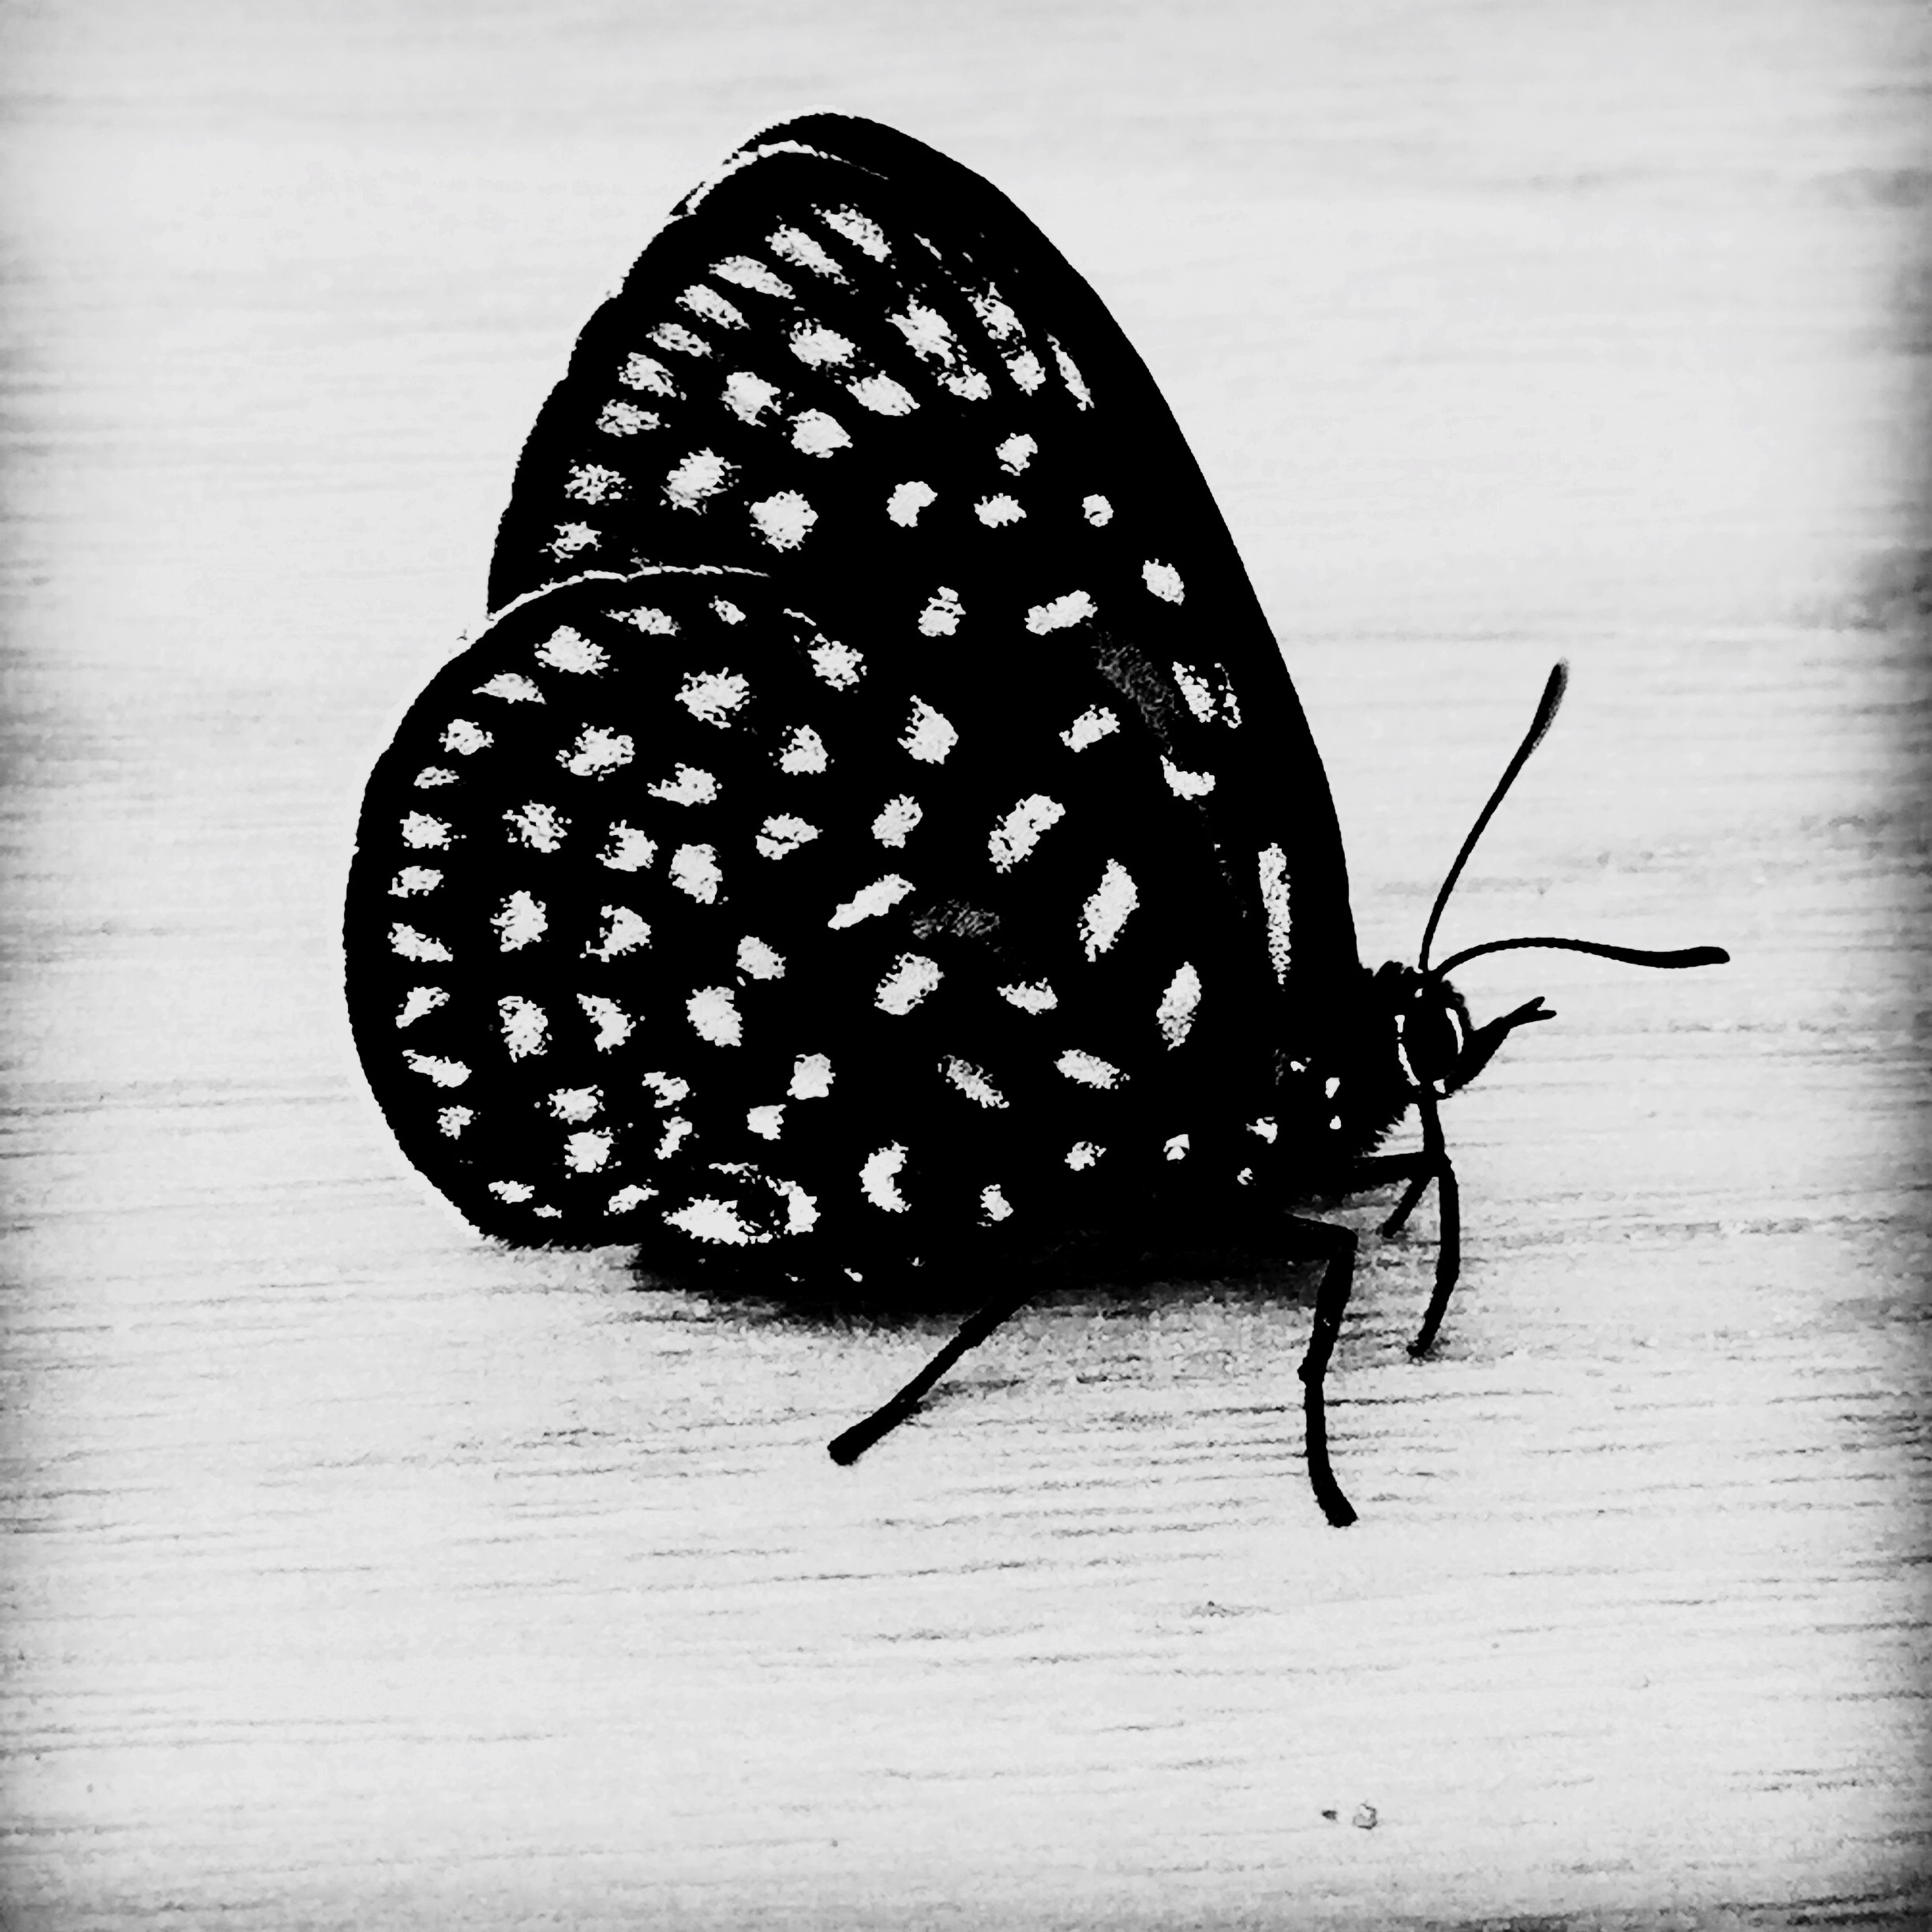 insect, one animal, animal themes, close-up, wildlife, animals in the wild, table, butterfly - insect, high angle view, indoors, animal antenna, animal markings, natural pattern, animal wing, black color, butterfly, wood - material, single object, no people, nature